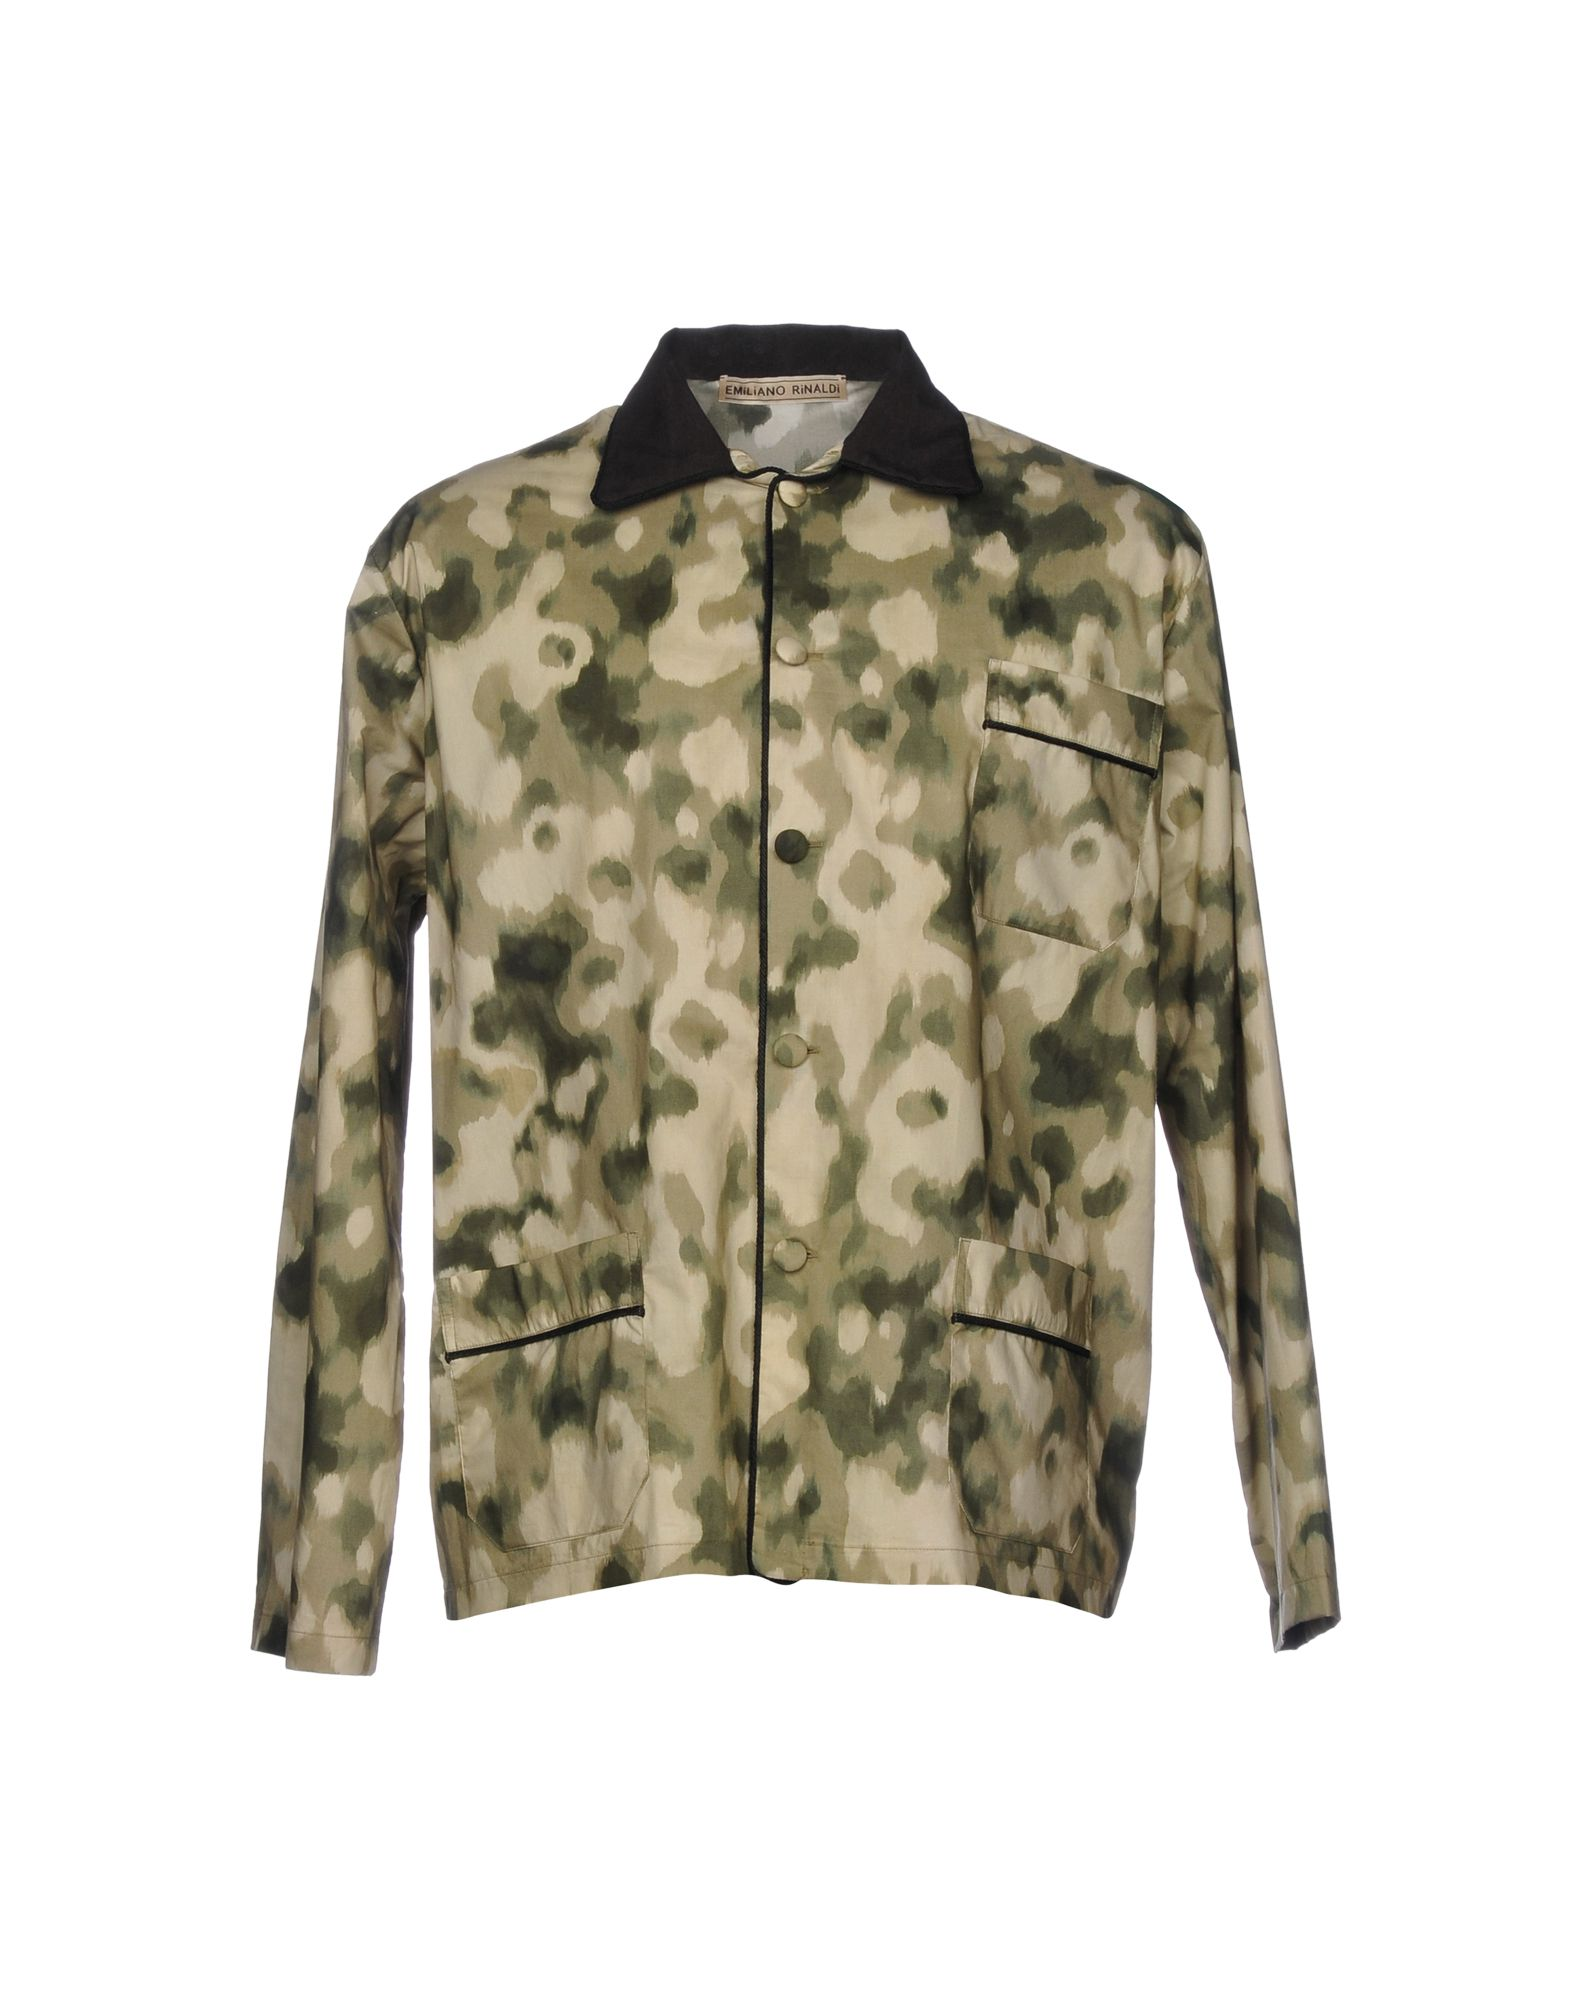 EMILIANO RINALDI Patterned Shirt in Military Green